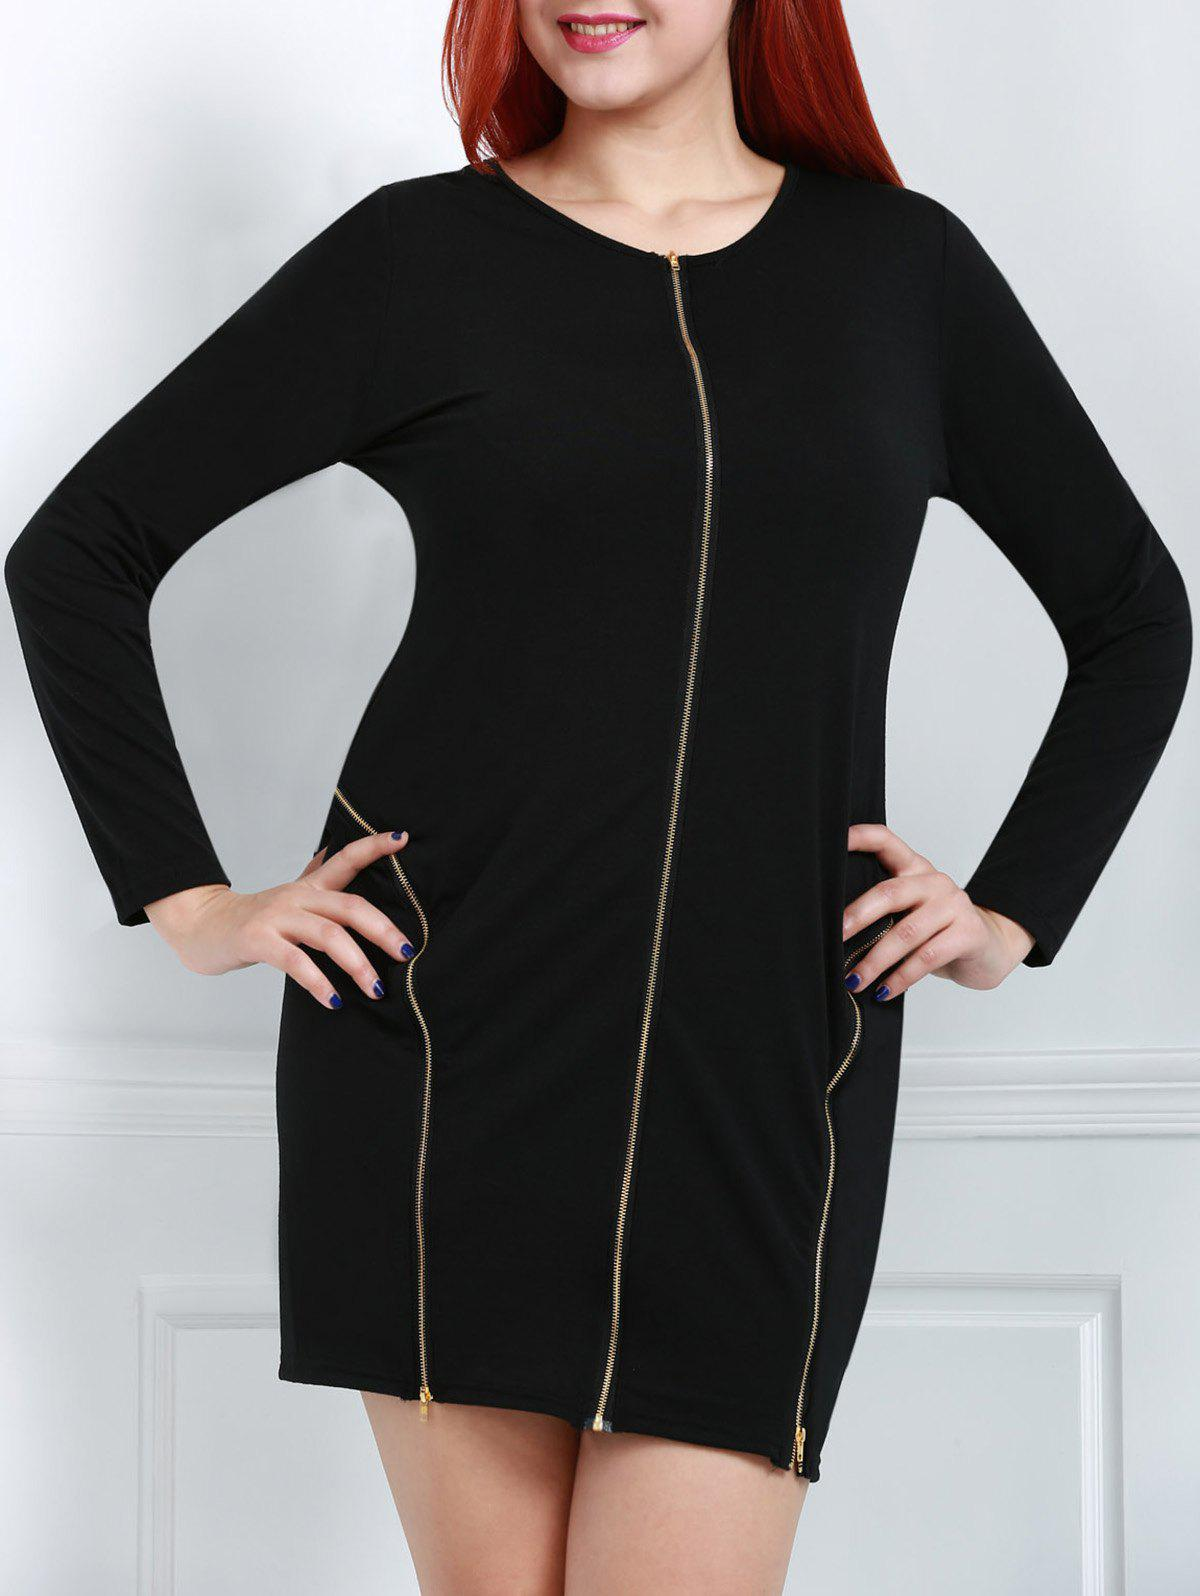 Scoop Neck Zipper Design Long Sleeve Plus Size Dress For Women - BLACK 2XL